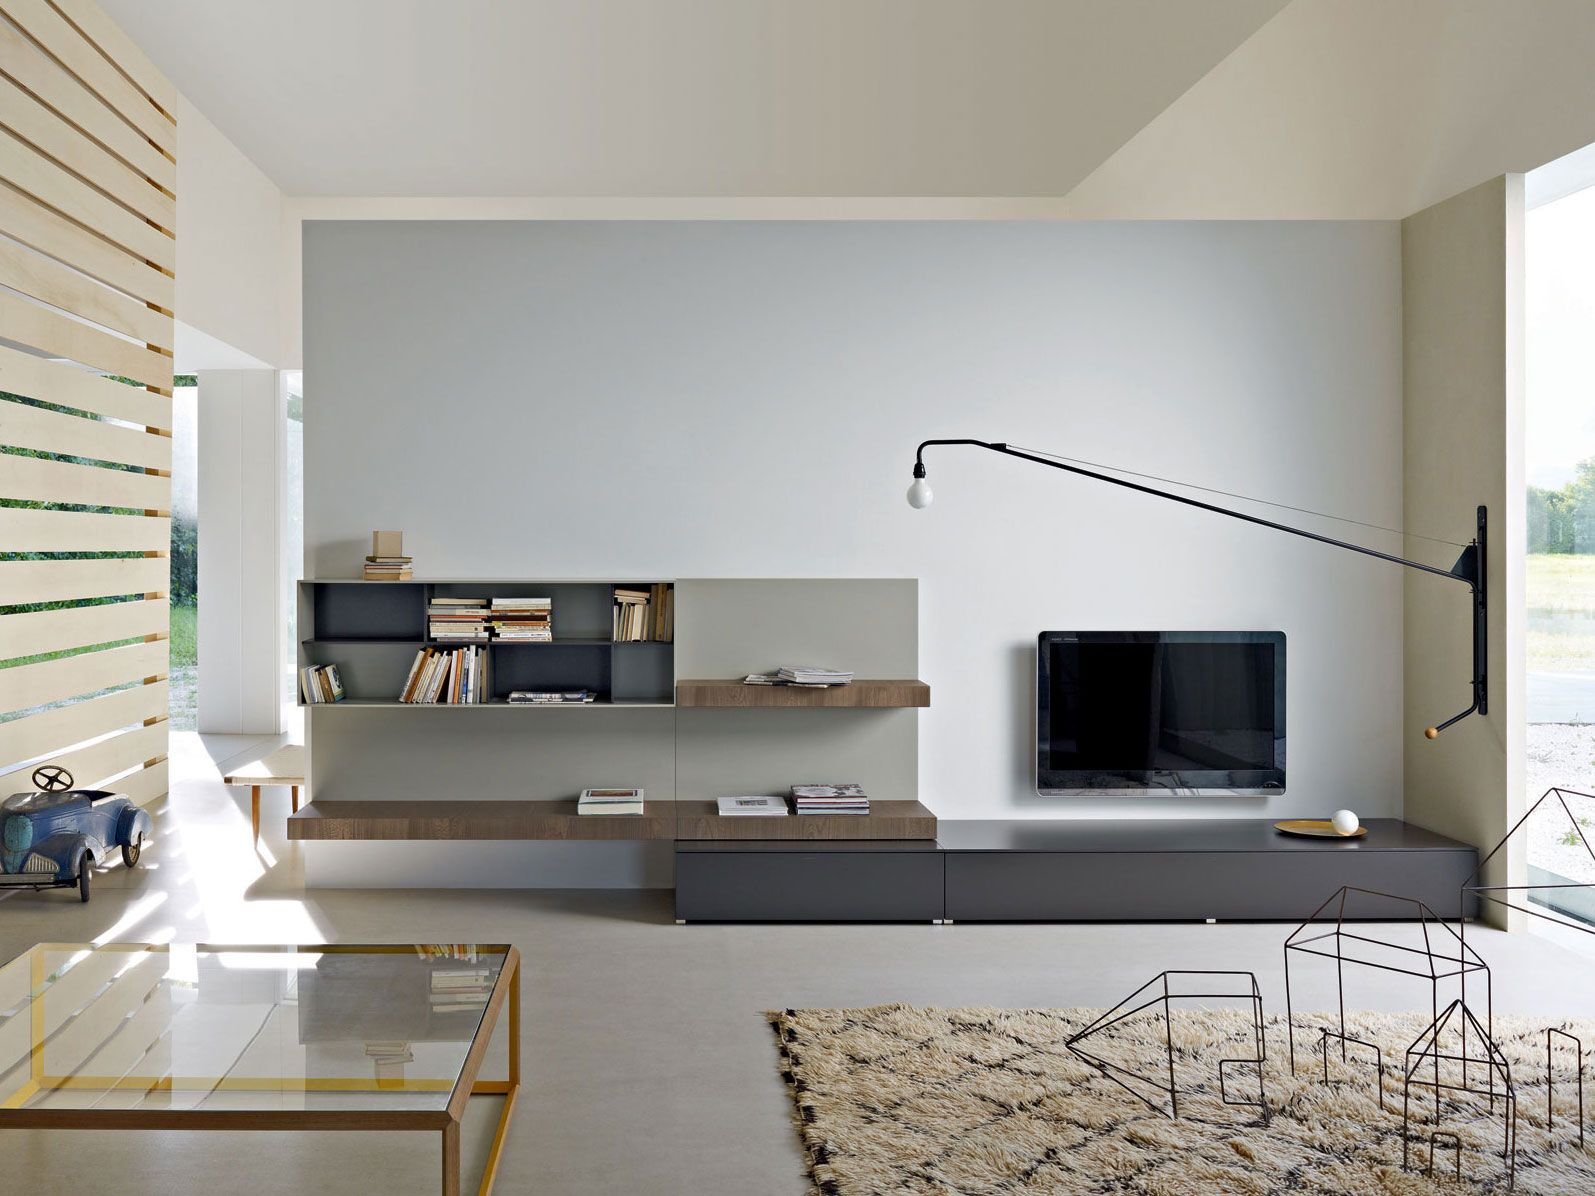 Sectional Tv Wall System Pass Sectional Storage Wall Molteni  # Deco Table Tele Plus Homecimema